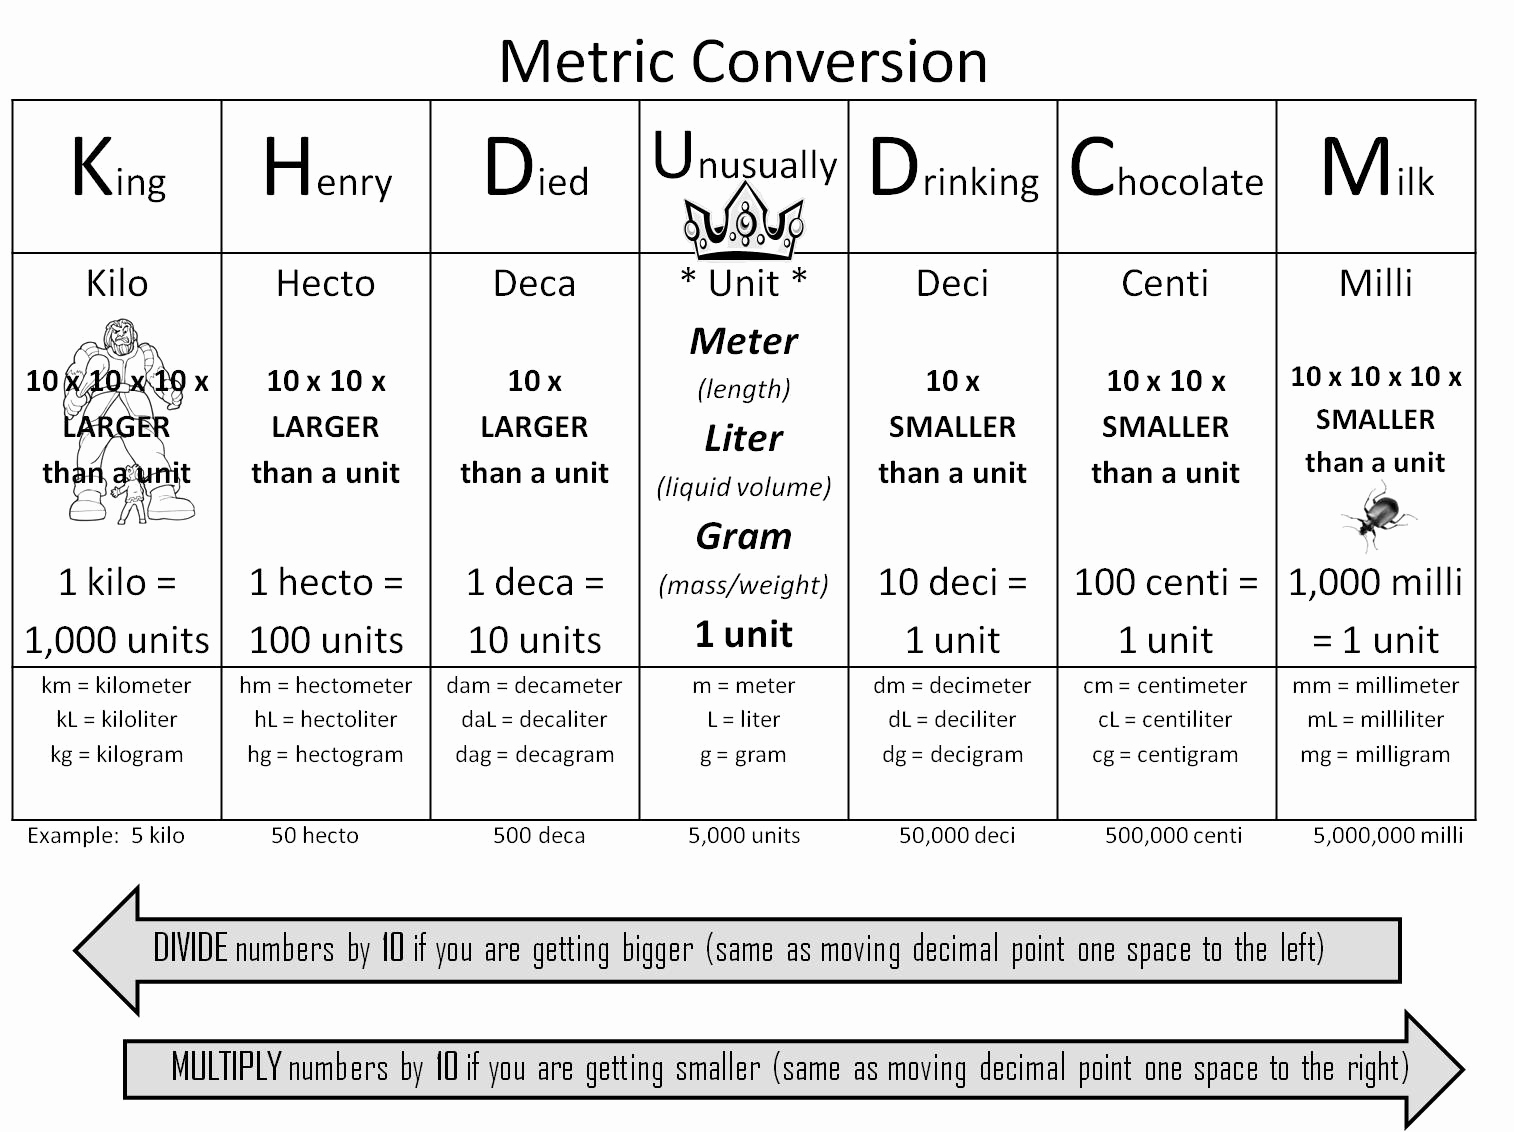 Metric Unit Conversion Chart Beautiful Strong Armor Math Metric Conversion Trick